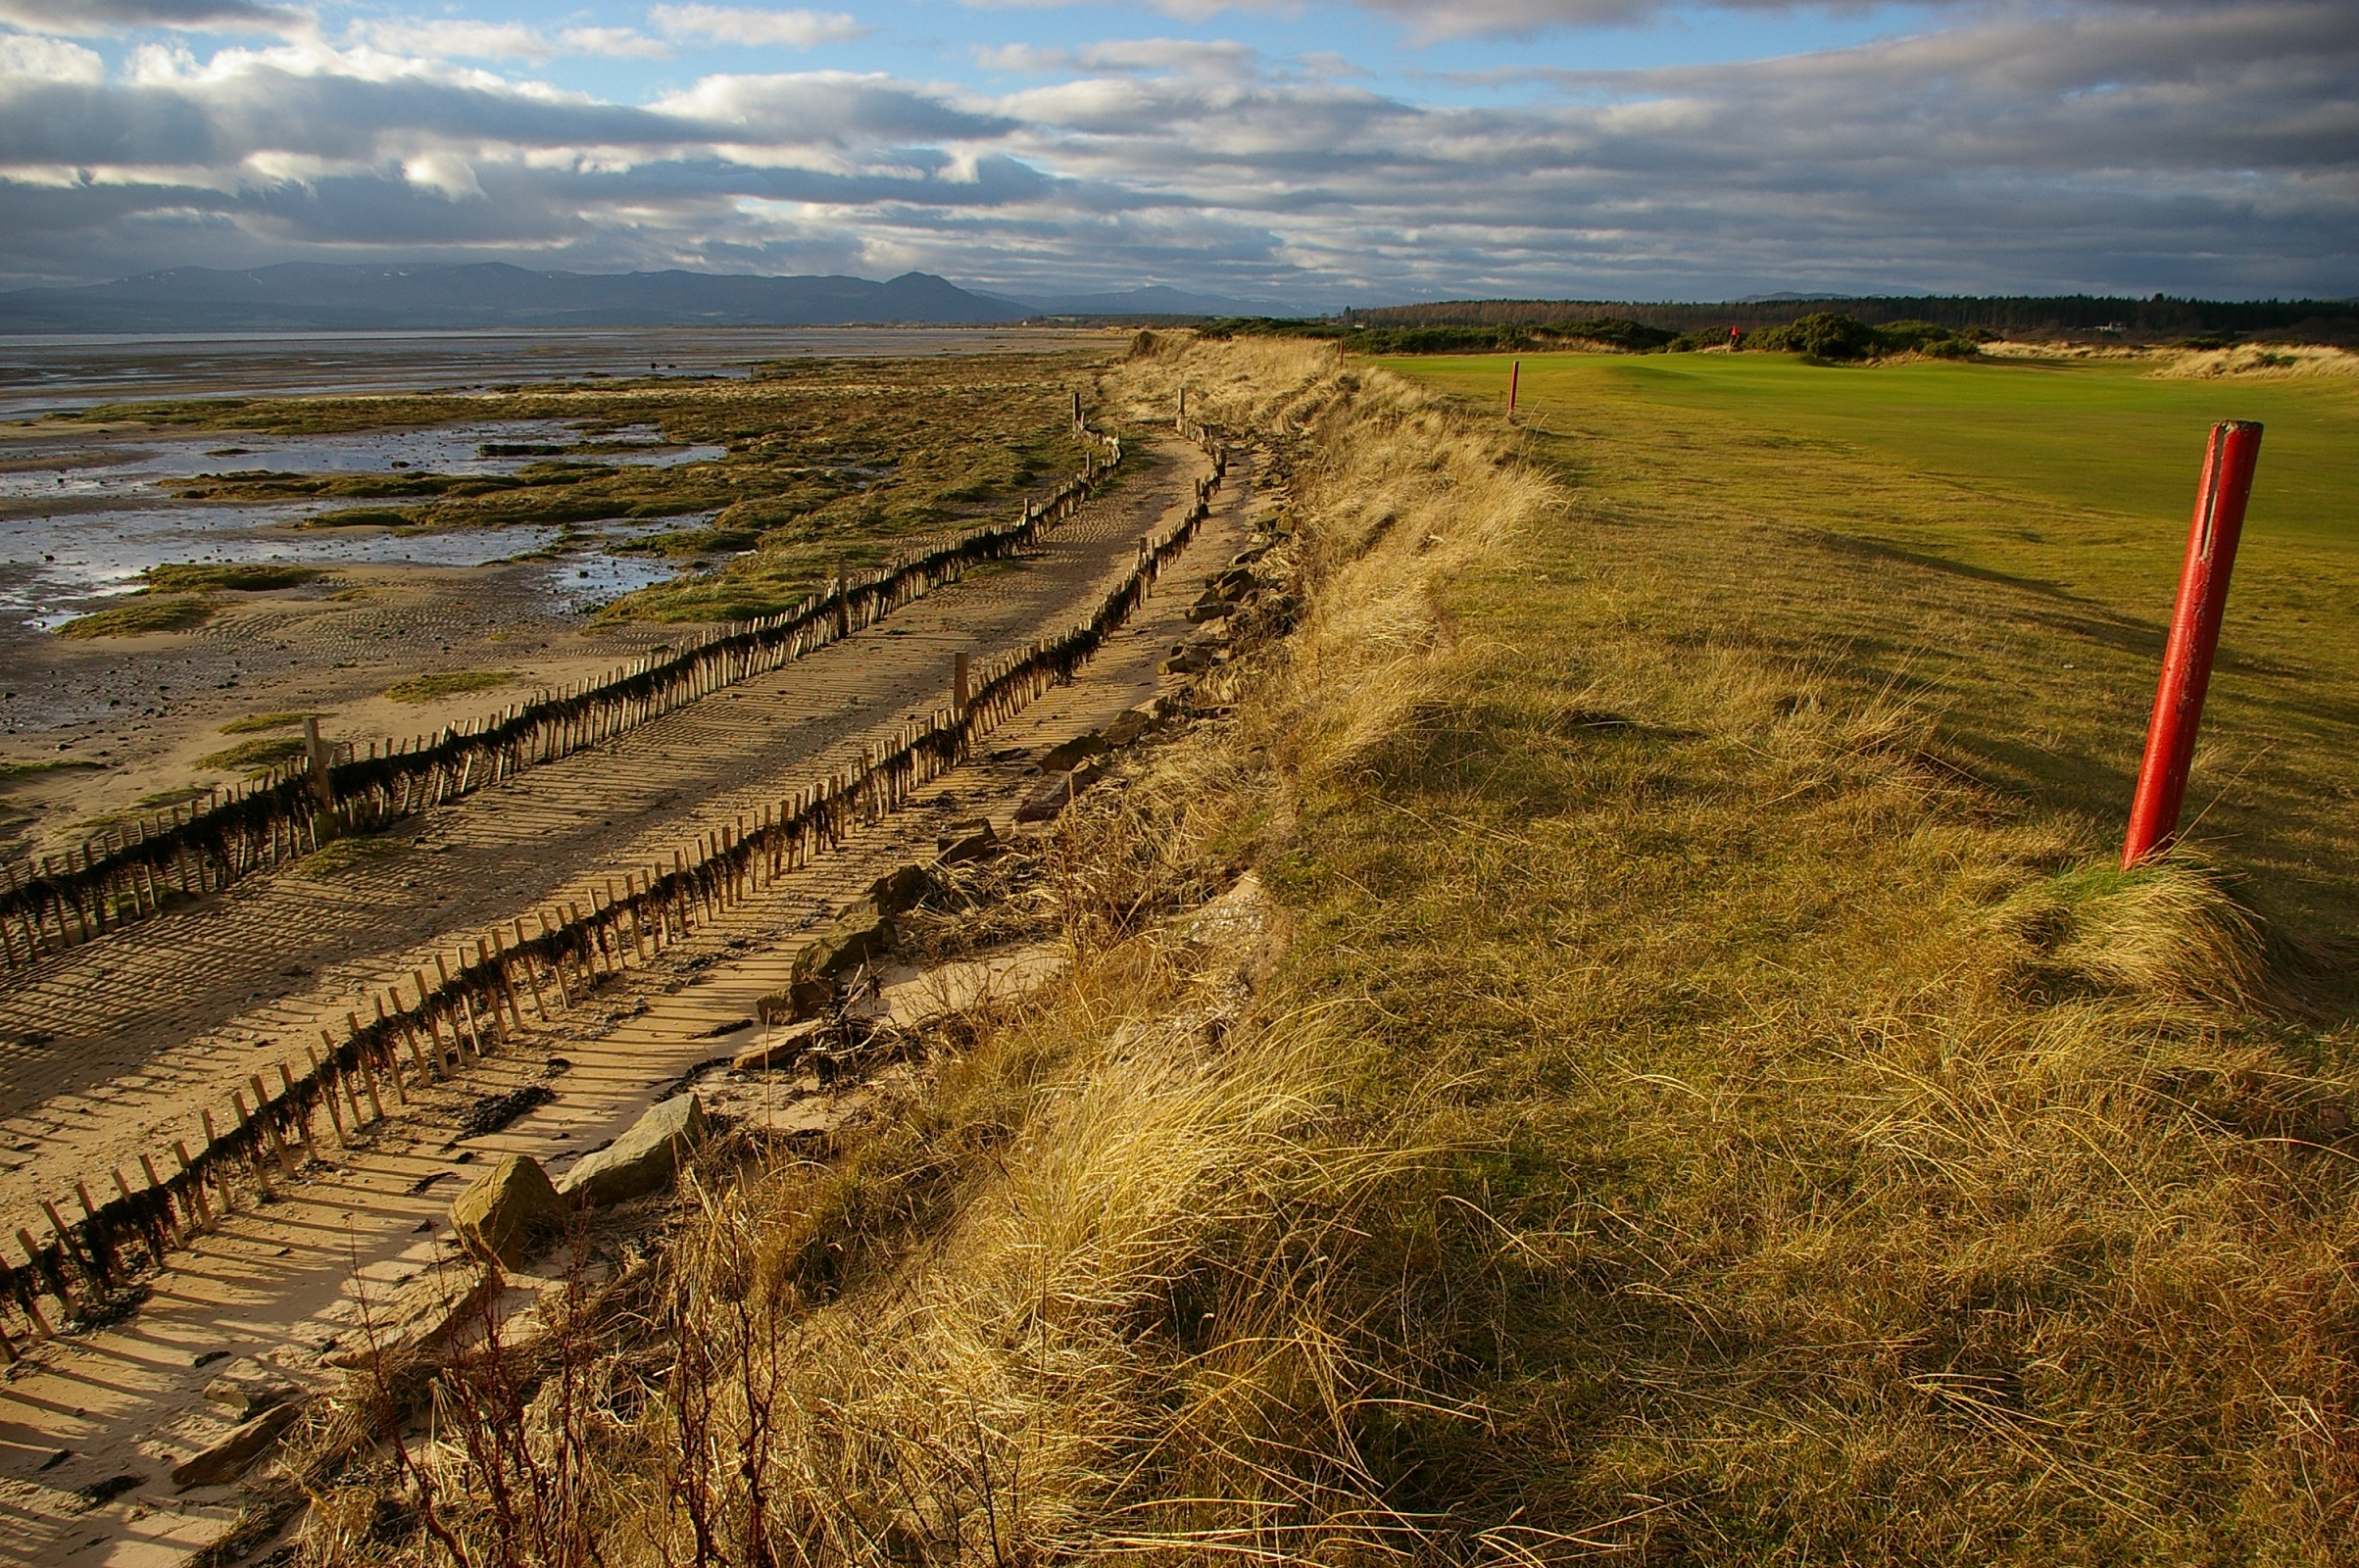 The 10th hole of the Royal Dornoch Golf Club's Struie Course has become susceptible to flooding